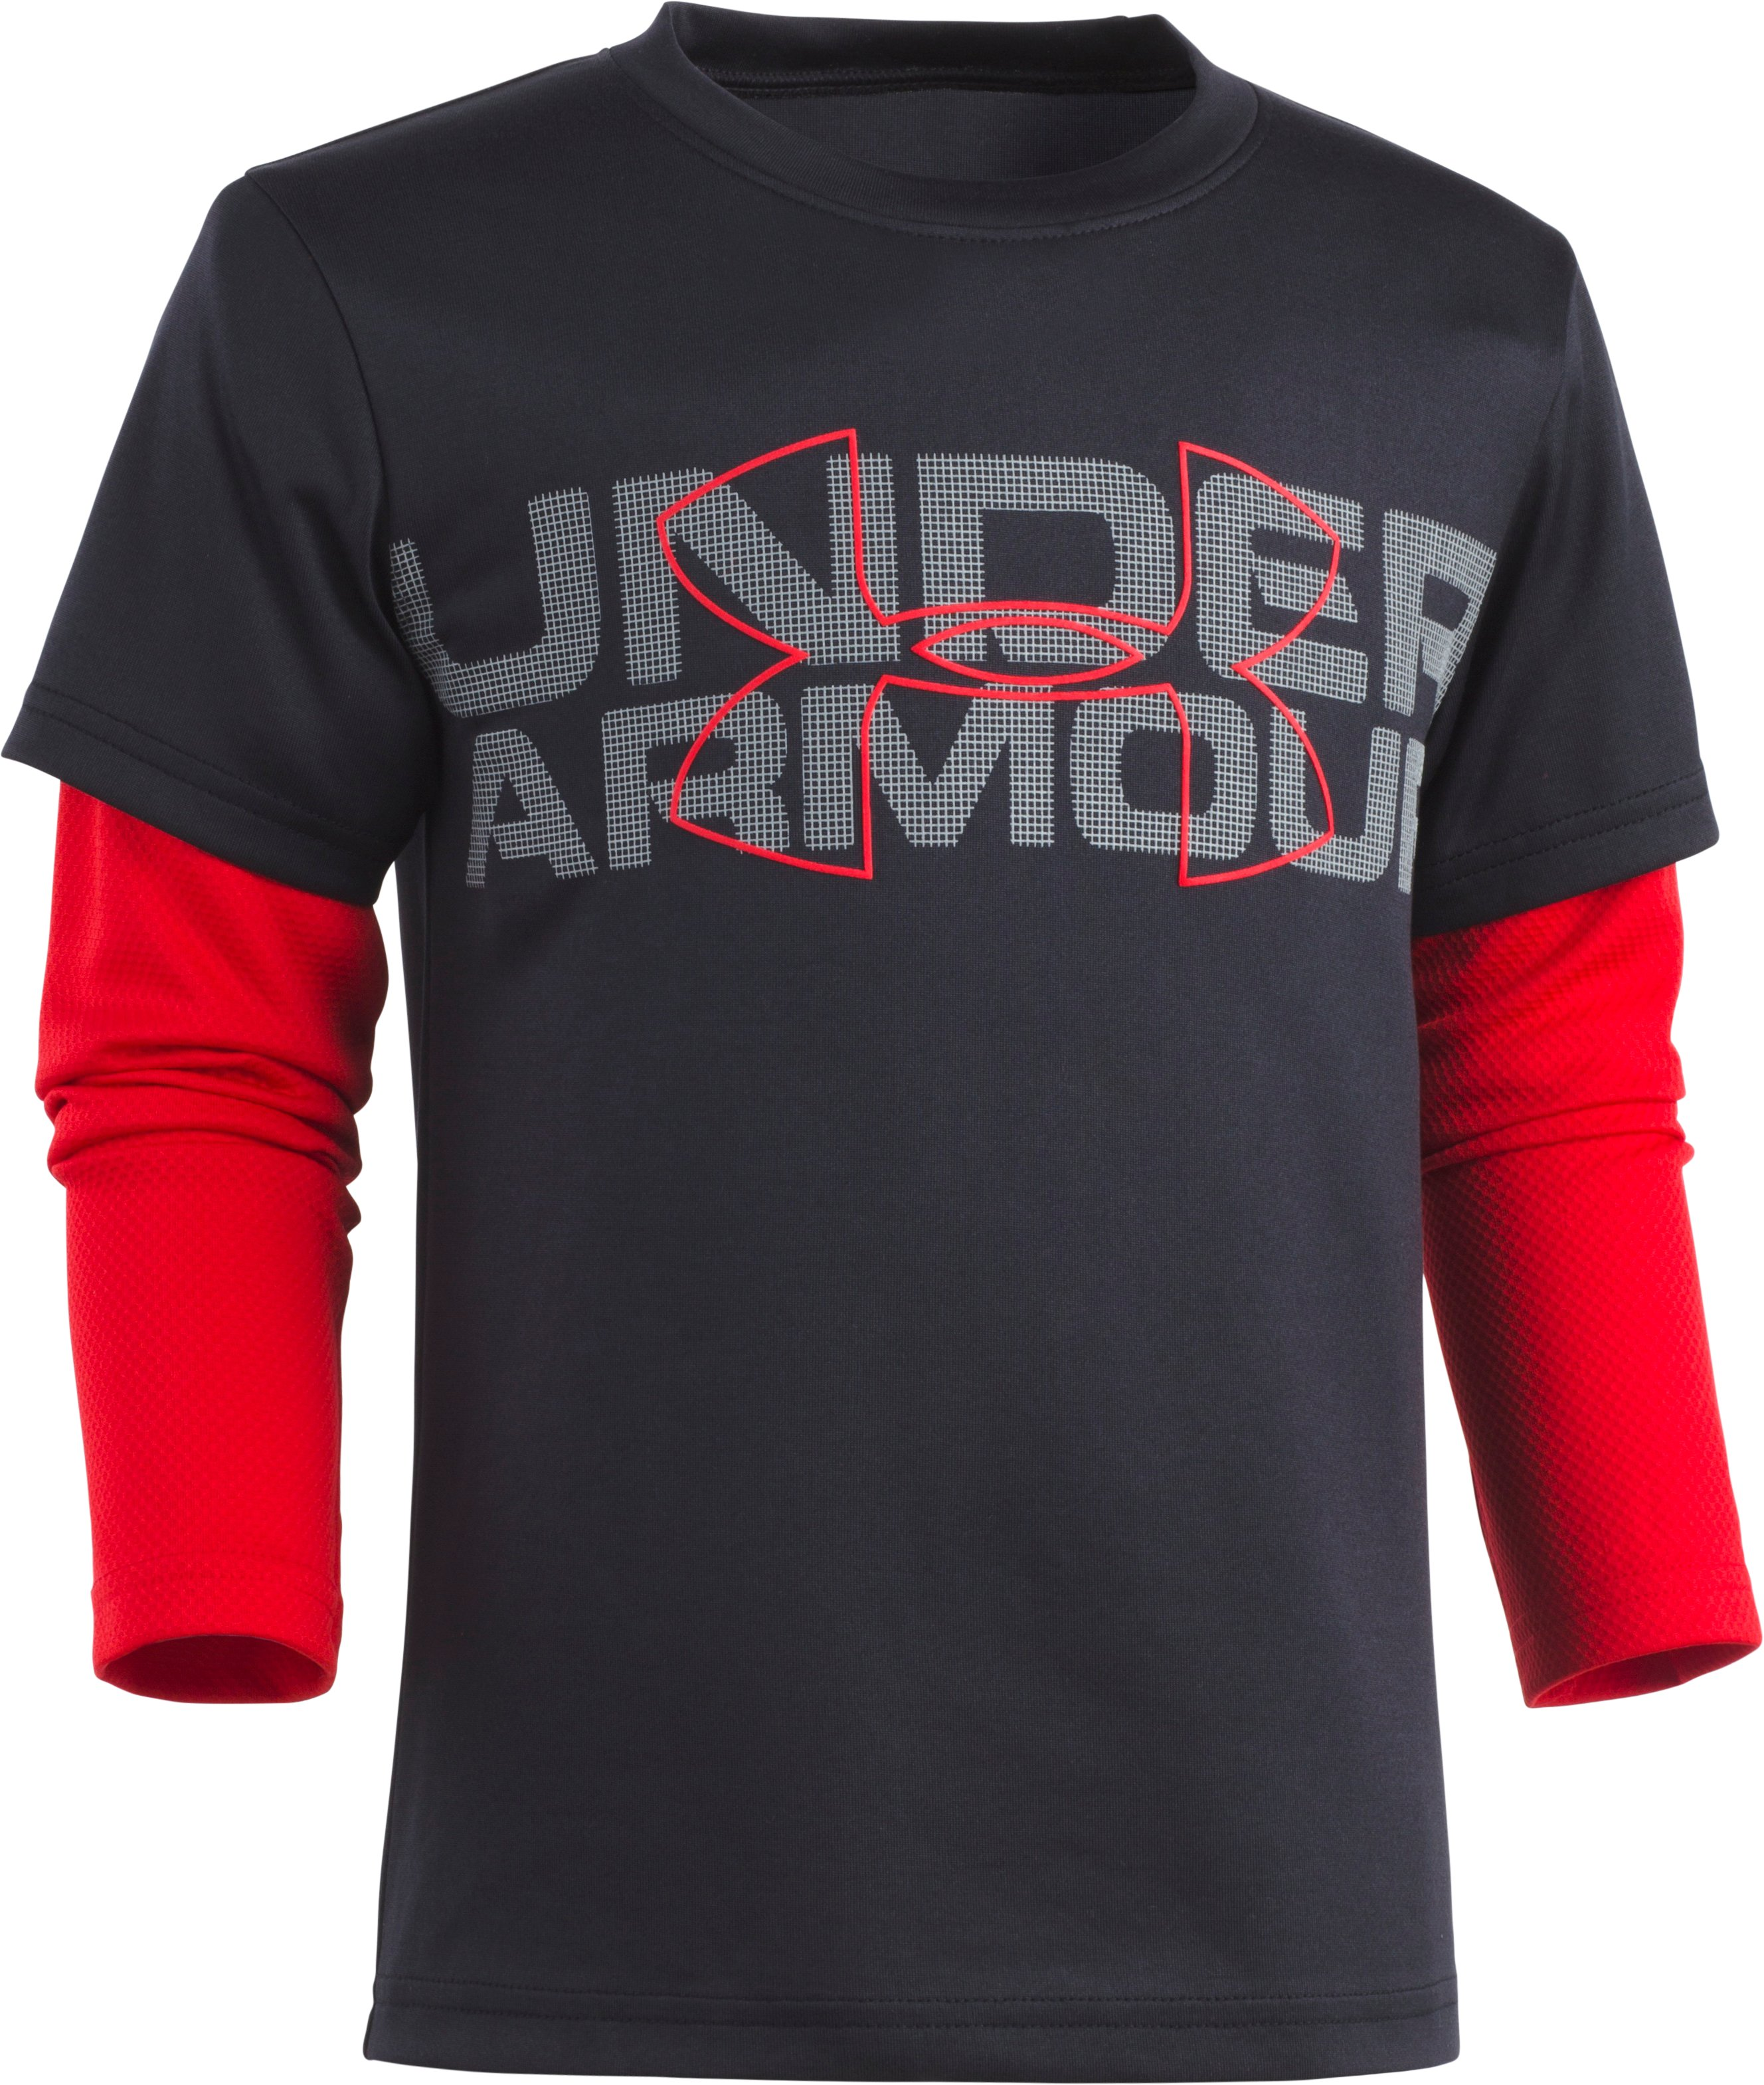 Boys' Pre-School UA Big Wordmark Slider, Black , Laydown